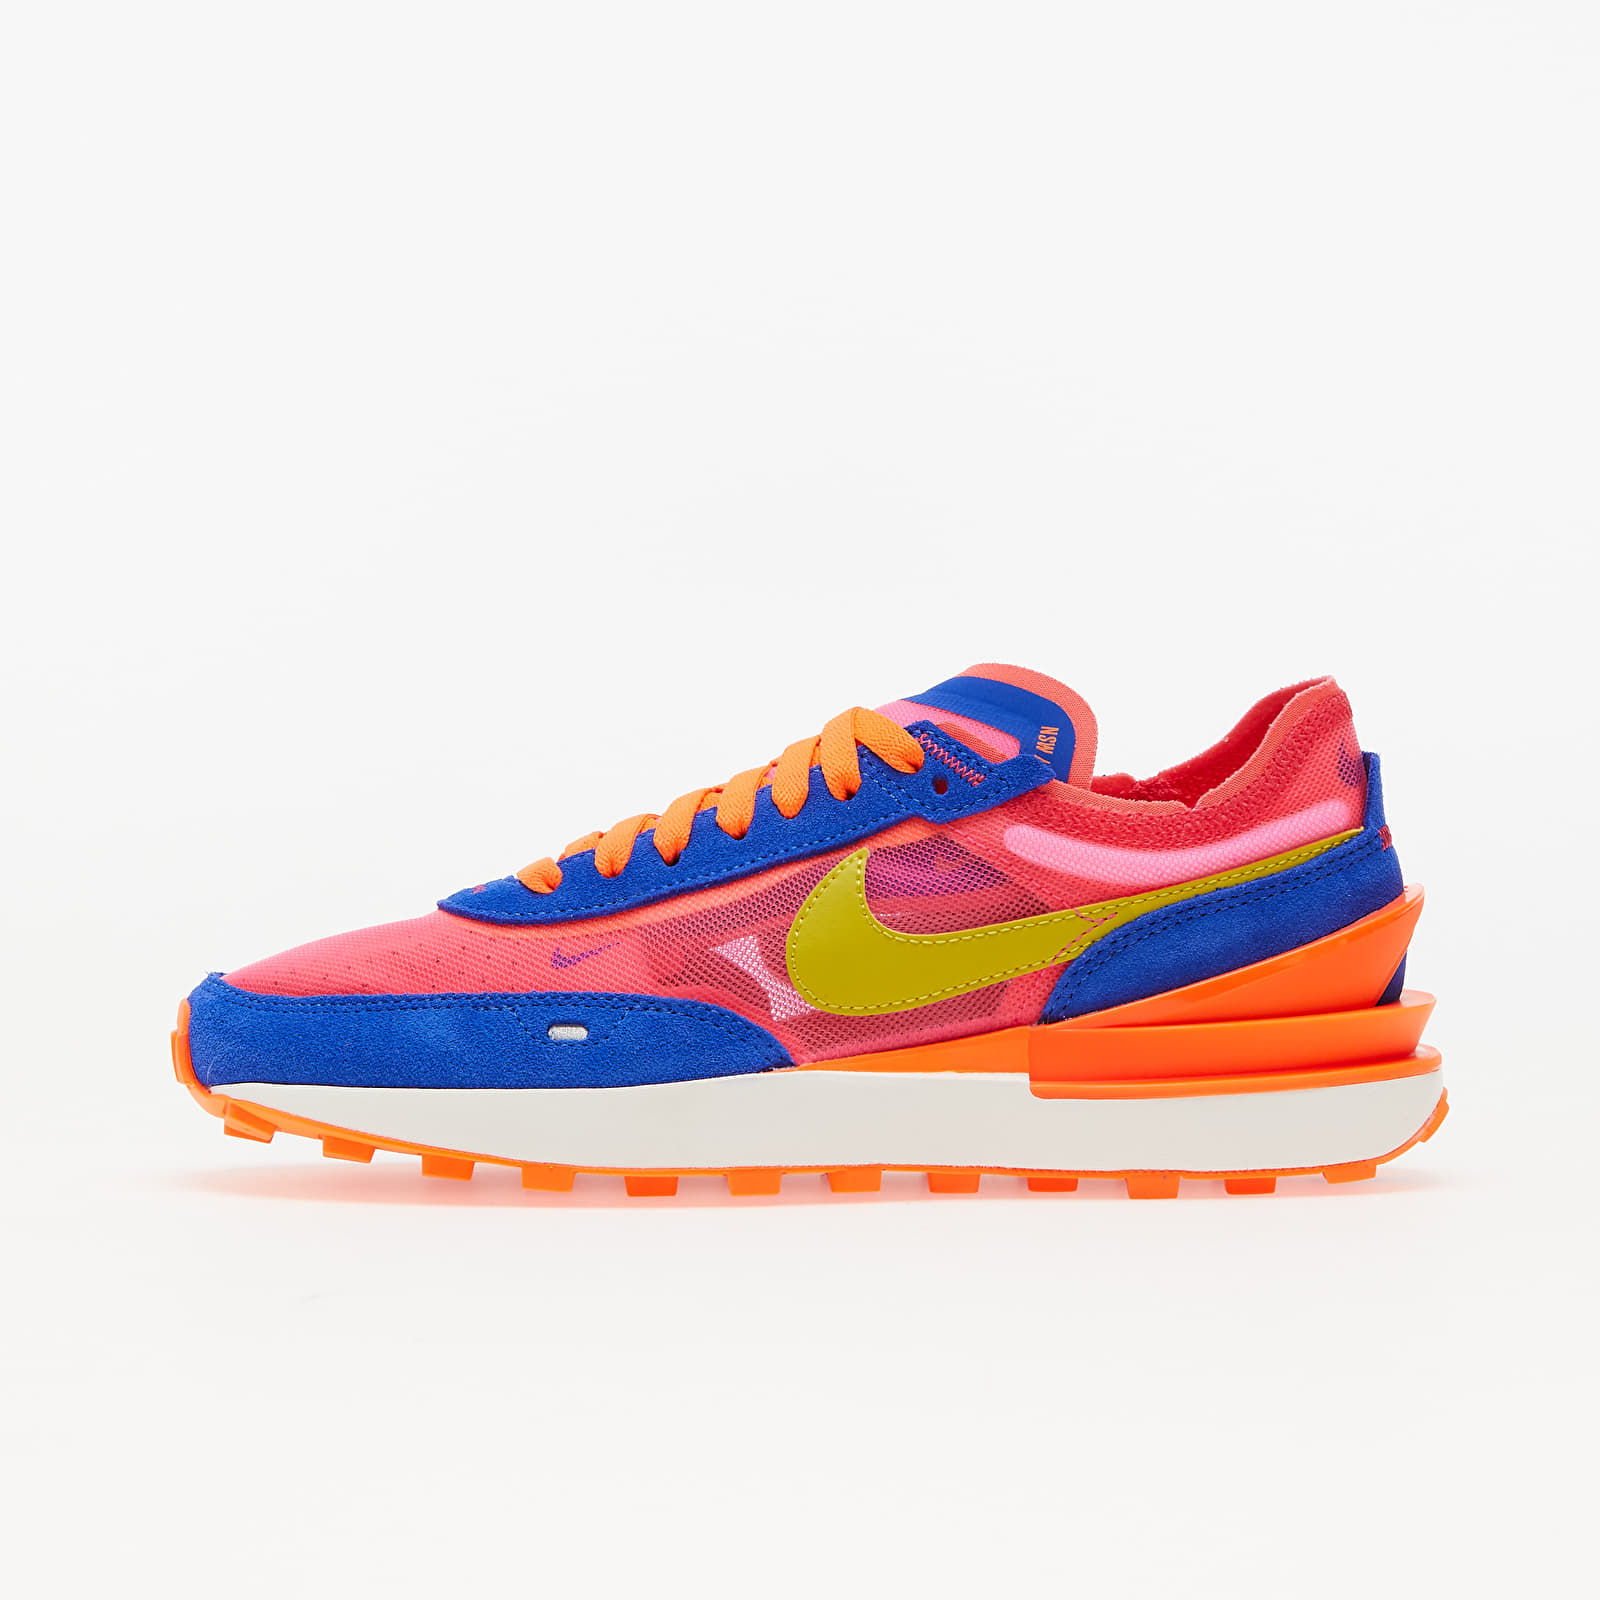 Nike Waffle One Racer Blue/ Bright Citron-Hyper Pink EUR 38.5